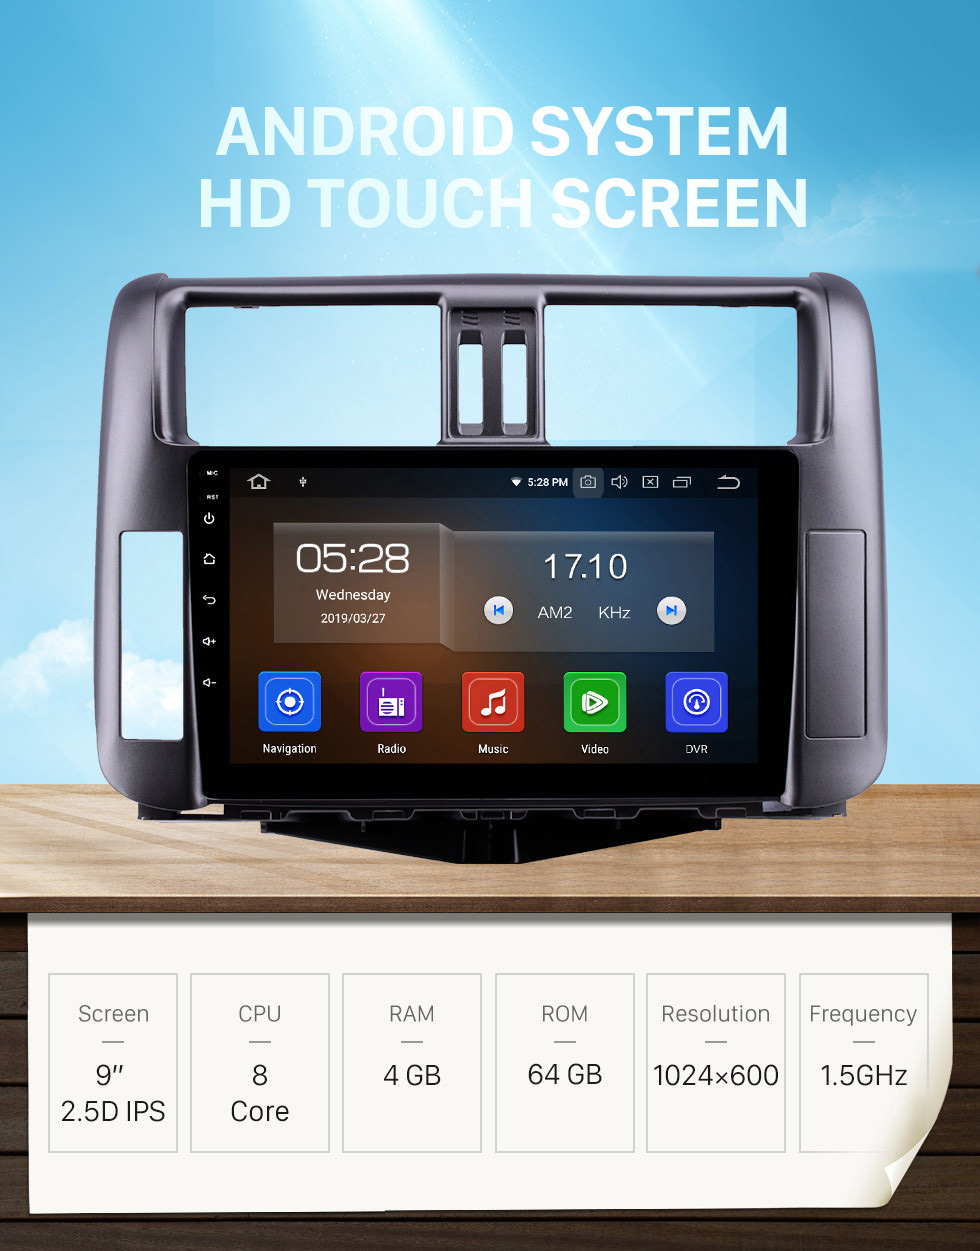 Seicane OEM 9 inch Android 10.0 HD Touchscreen Bluetooth Radio for 2010-2013 Toyota Prado 150 with GPS Navigation USB FM auto stereo Wifi AUX support DVR TPMS Backup Camera OBD2 SWC